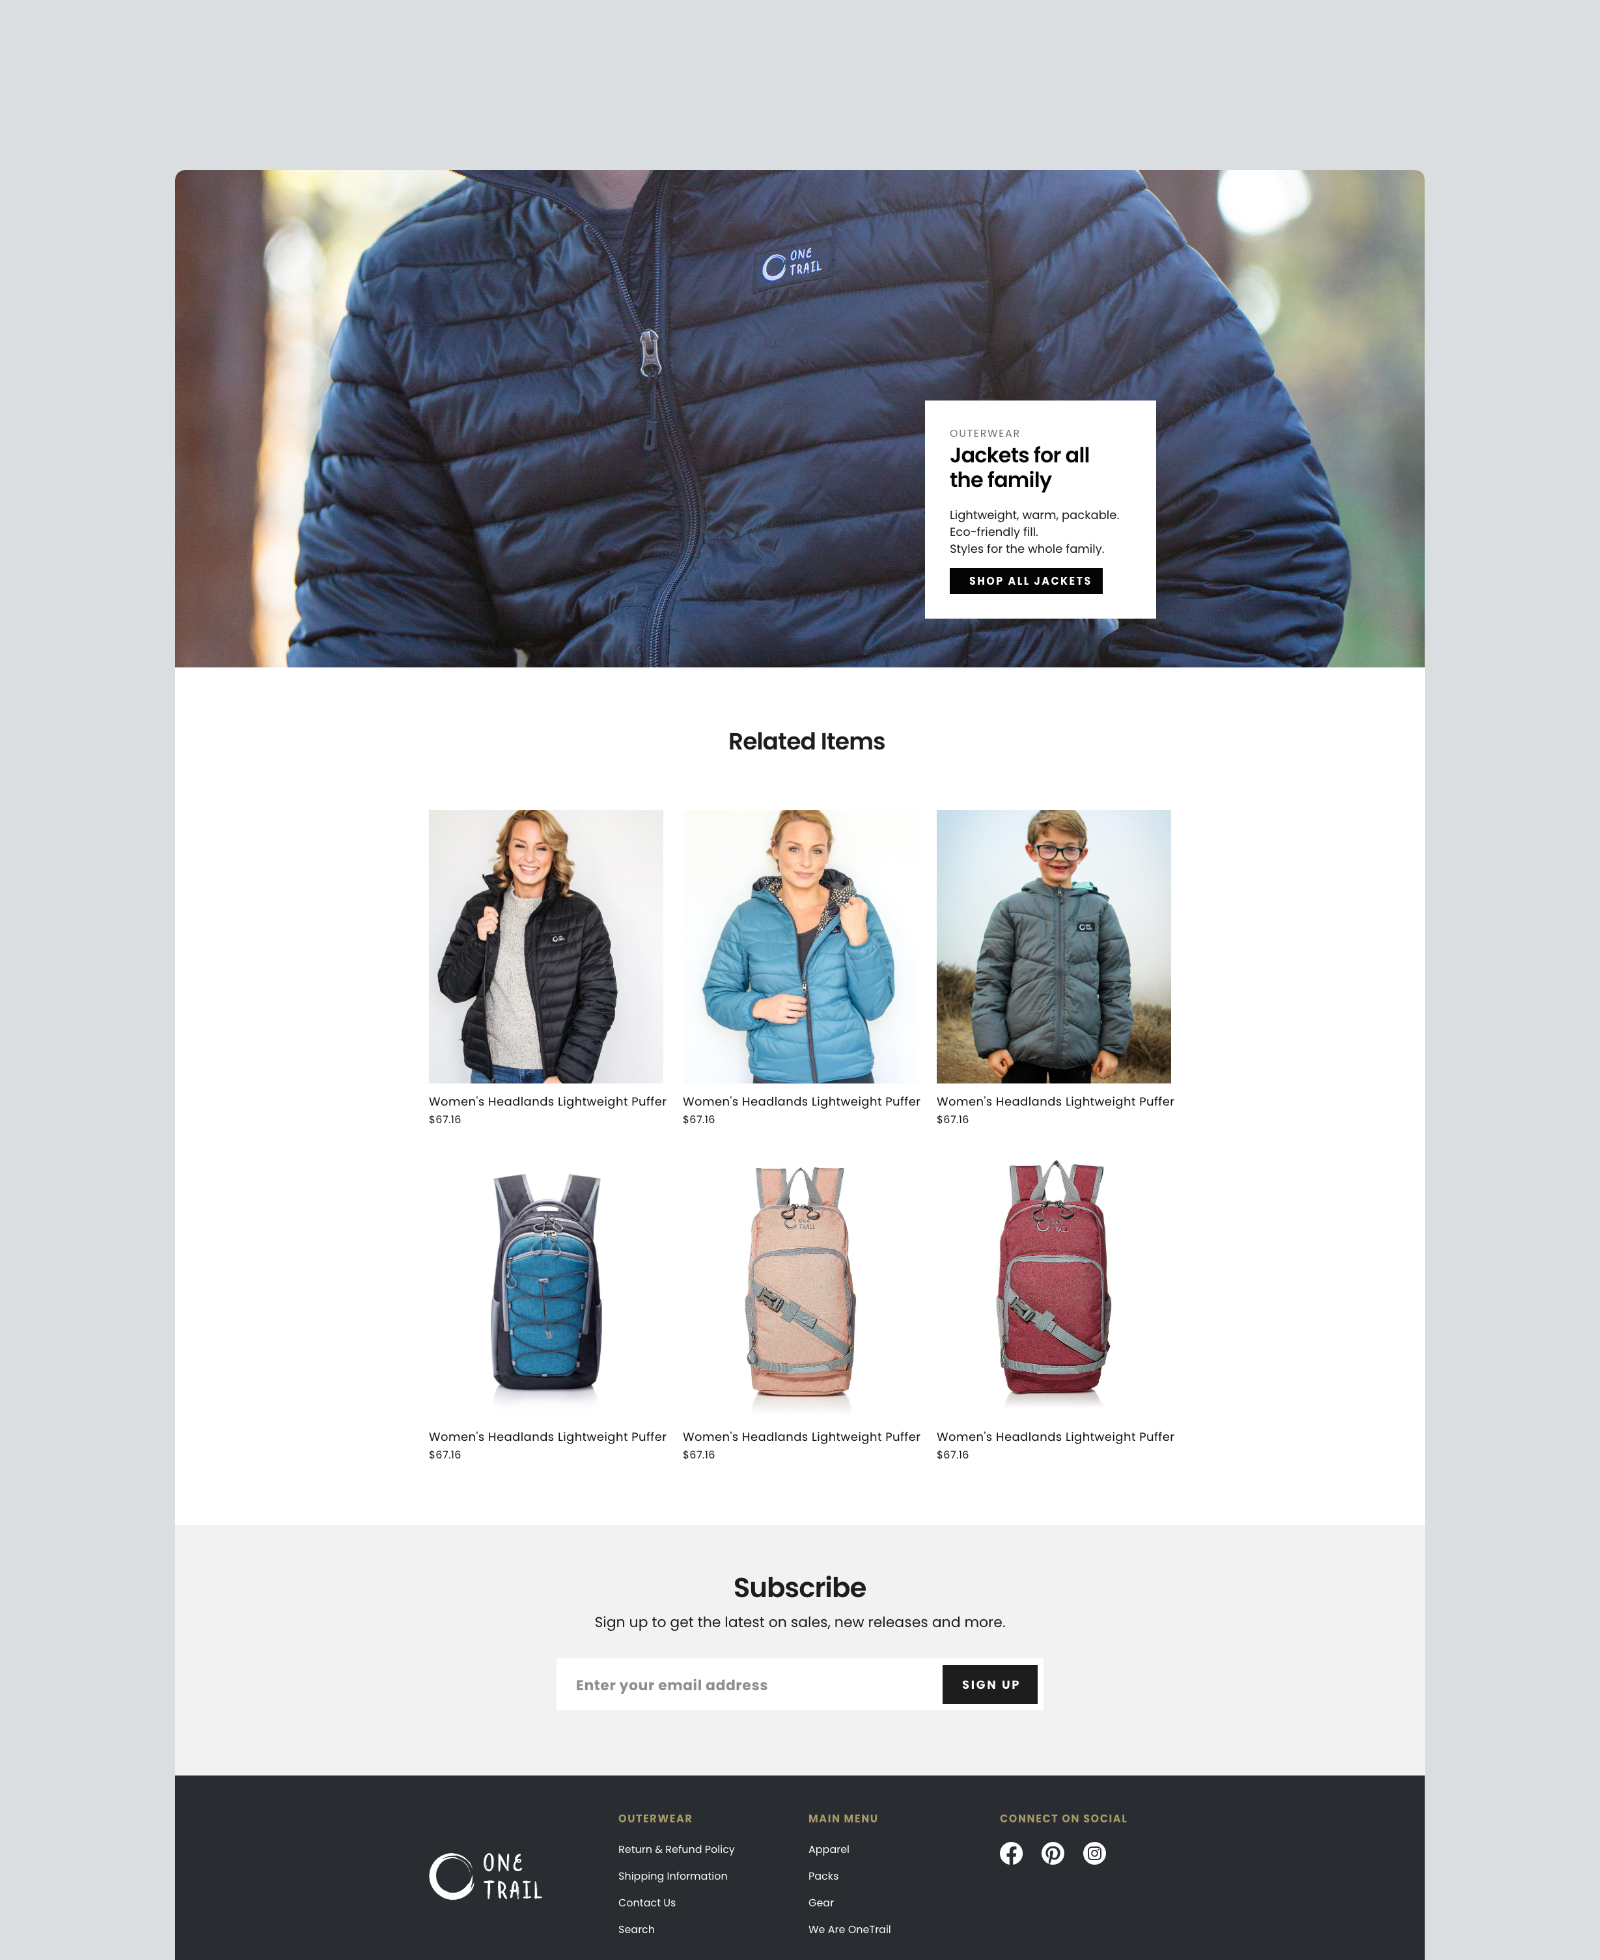 One Trail Gear Product Page